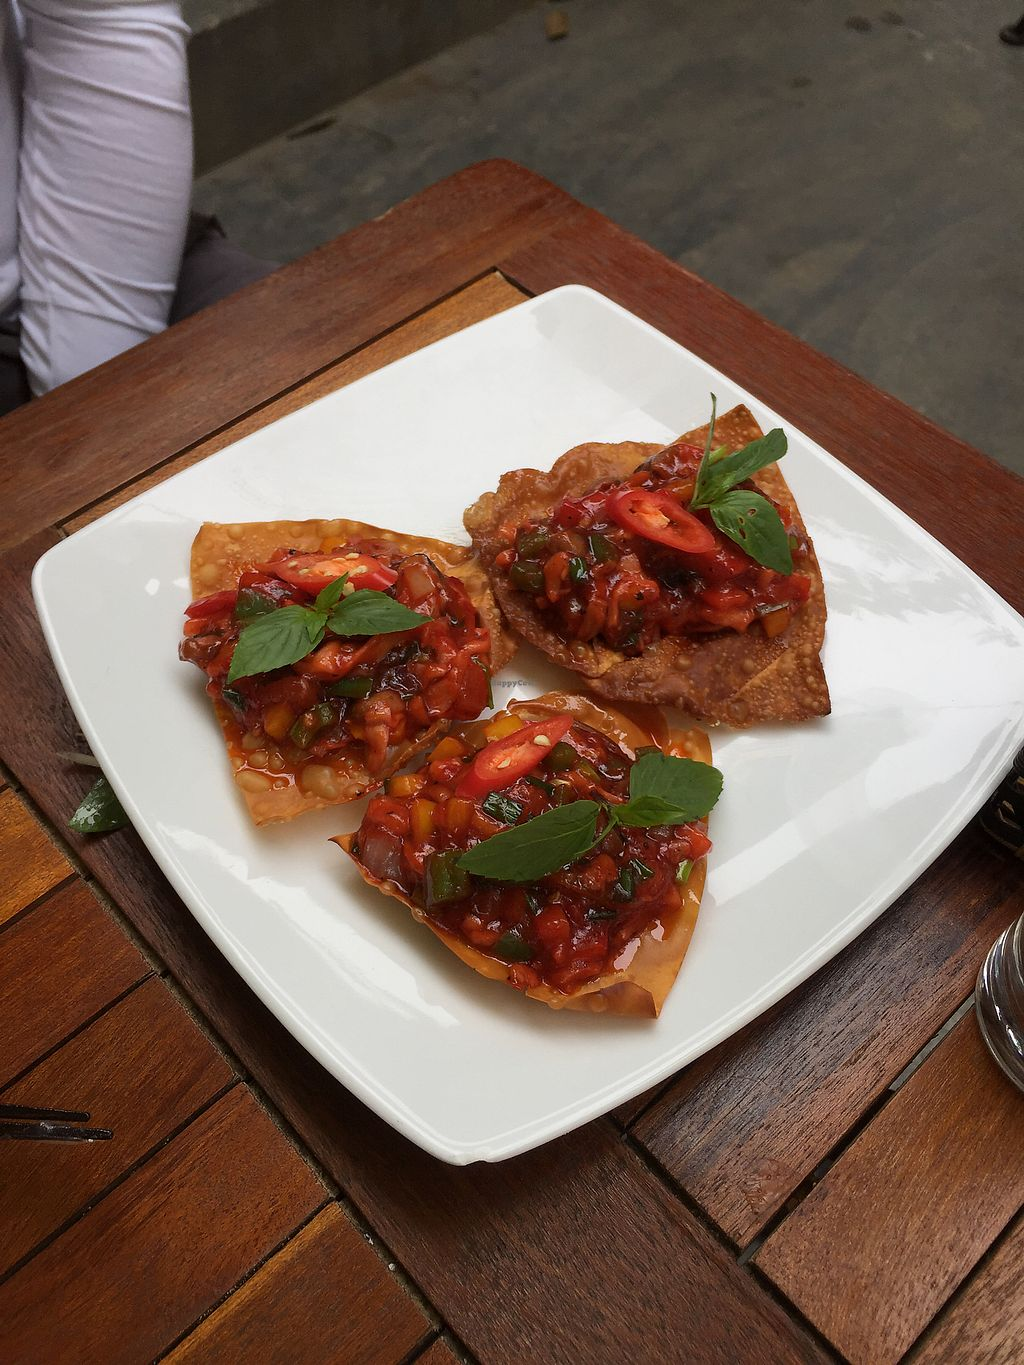 """Photo of What Else Cafe  by <a href=""""/members/profile/kars10"""">kars10</a> <br/>Vegan Wonton  <br/> February 1, 2018  - <a href='/contact/abuse/image/101159/353520'>Report</a>"""